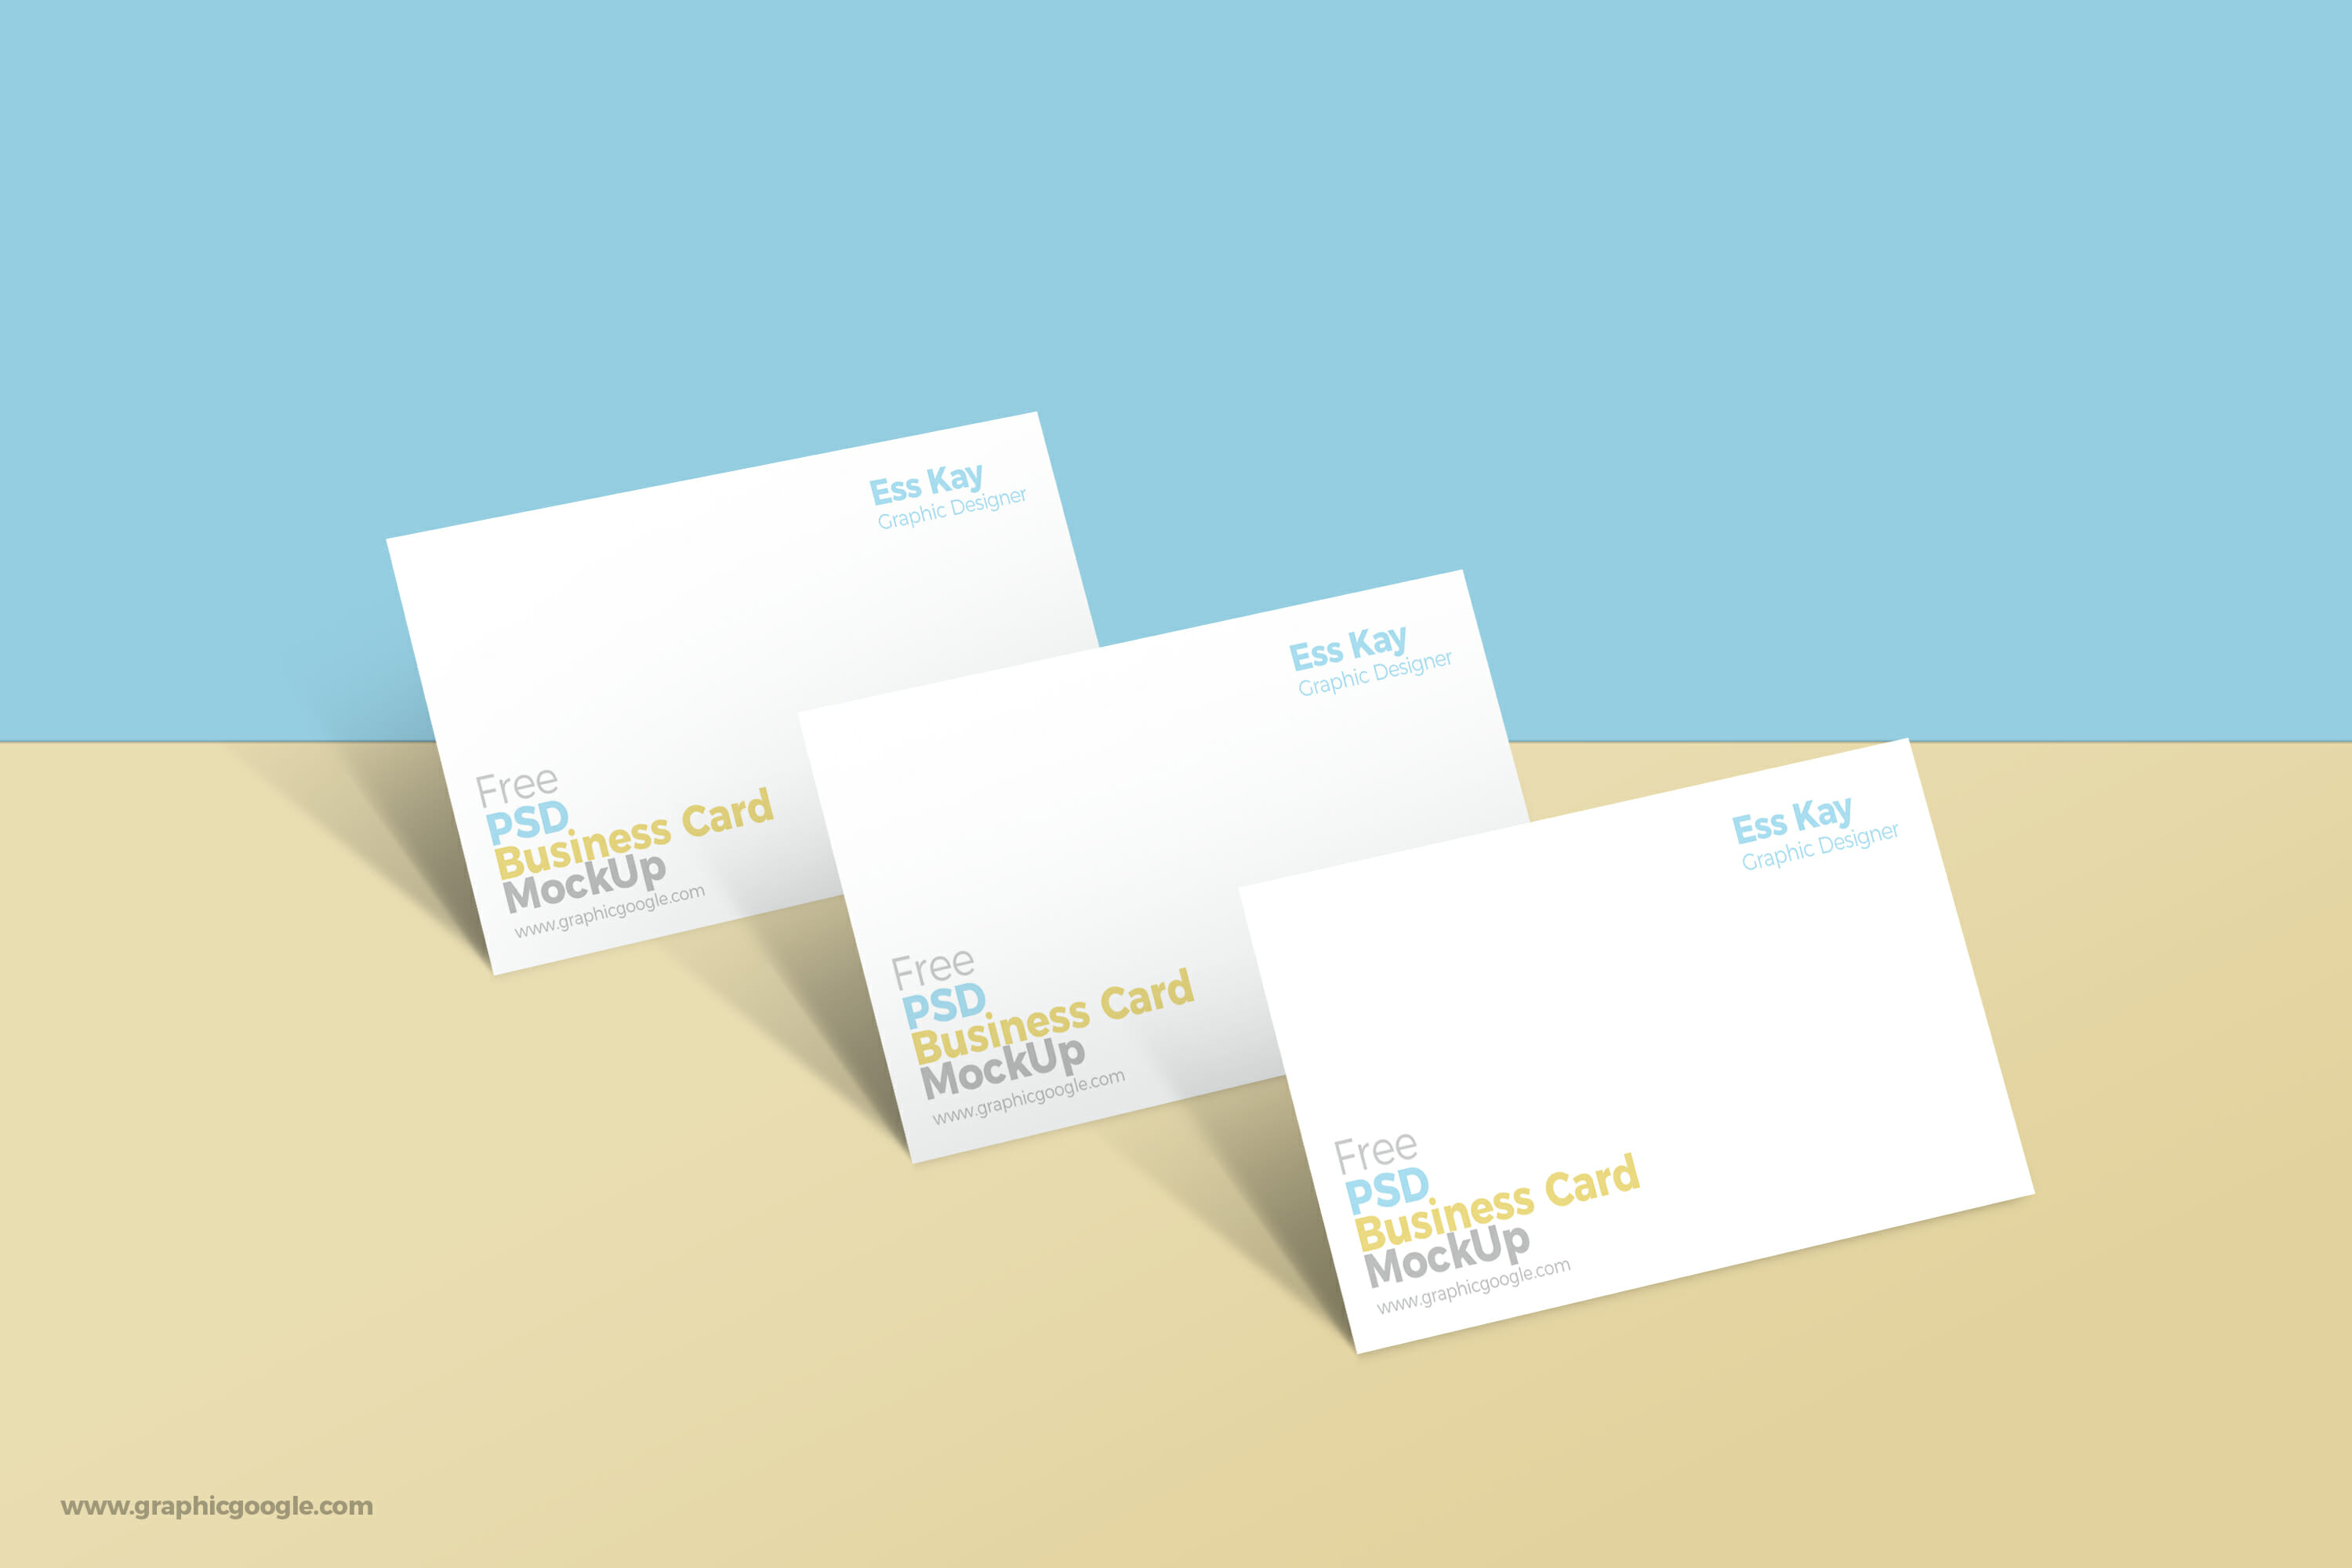 business card presentation template psd - new business card mockup awesome mockups